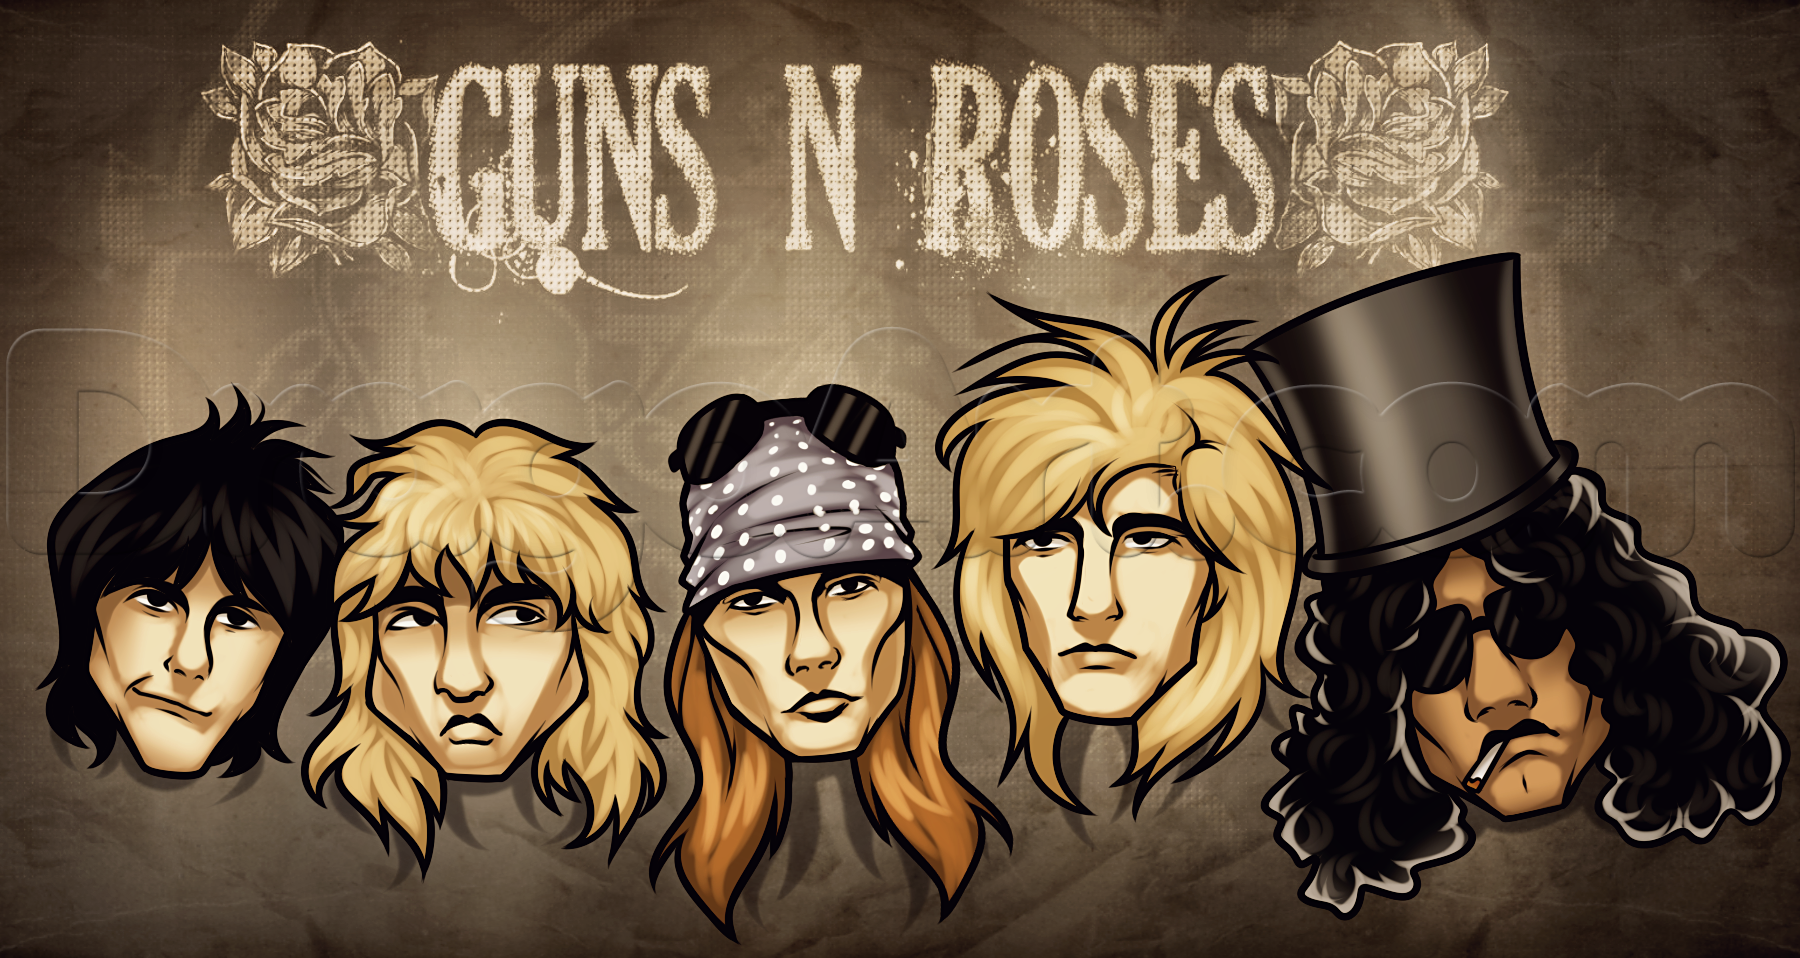 High Resolution Wallpaper Guns N Roses Axl Rose Drawing